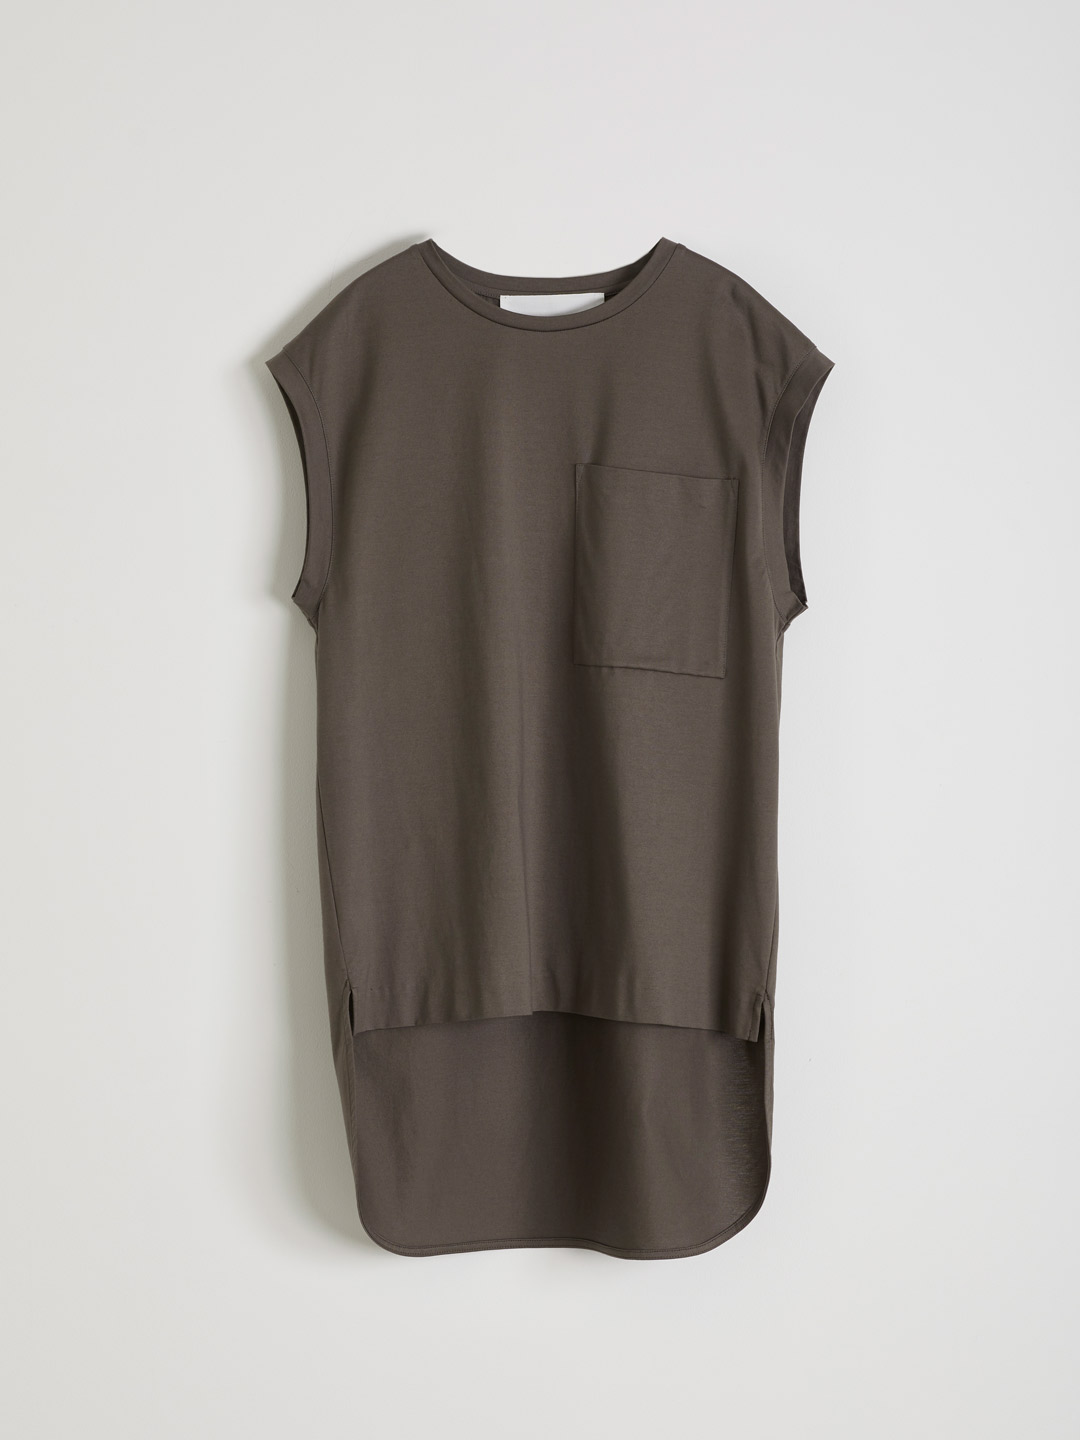 French Sleeve T-shirt - Brown